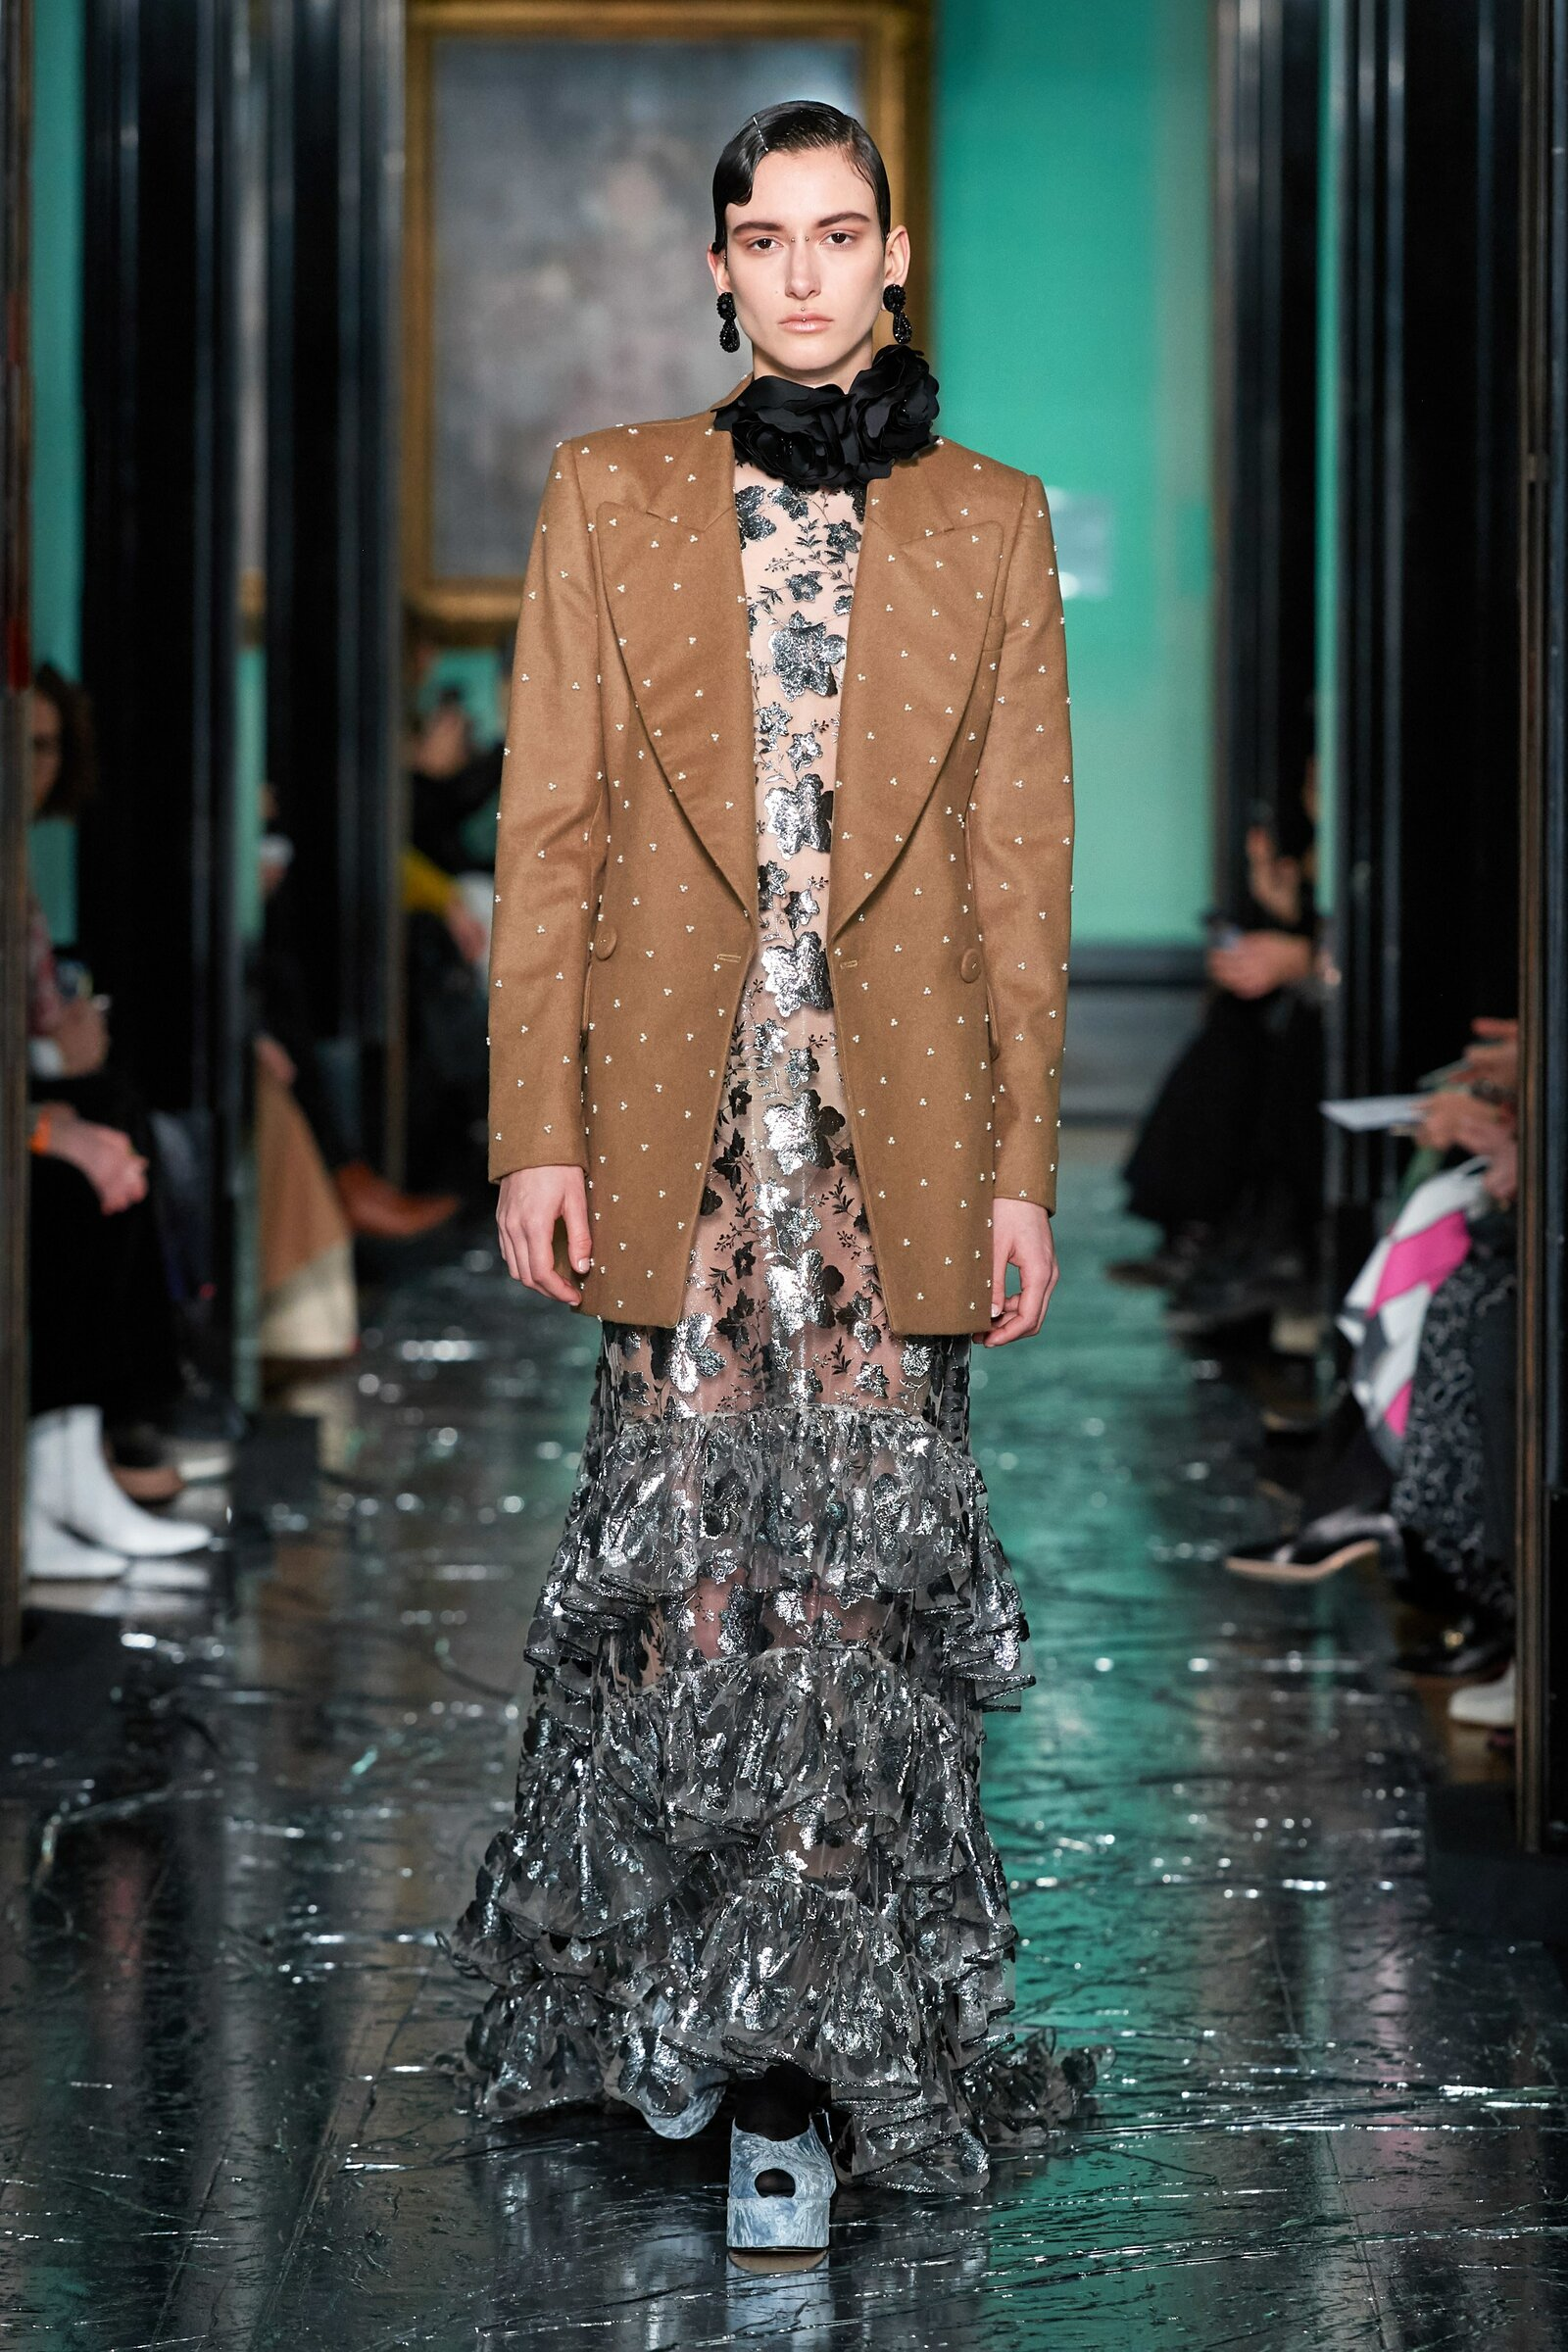 Erdem - London Fashion Week AW 2020